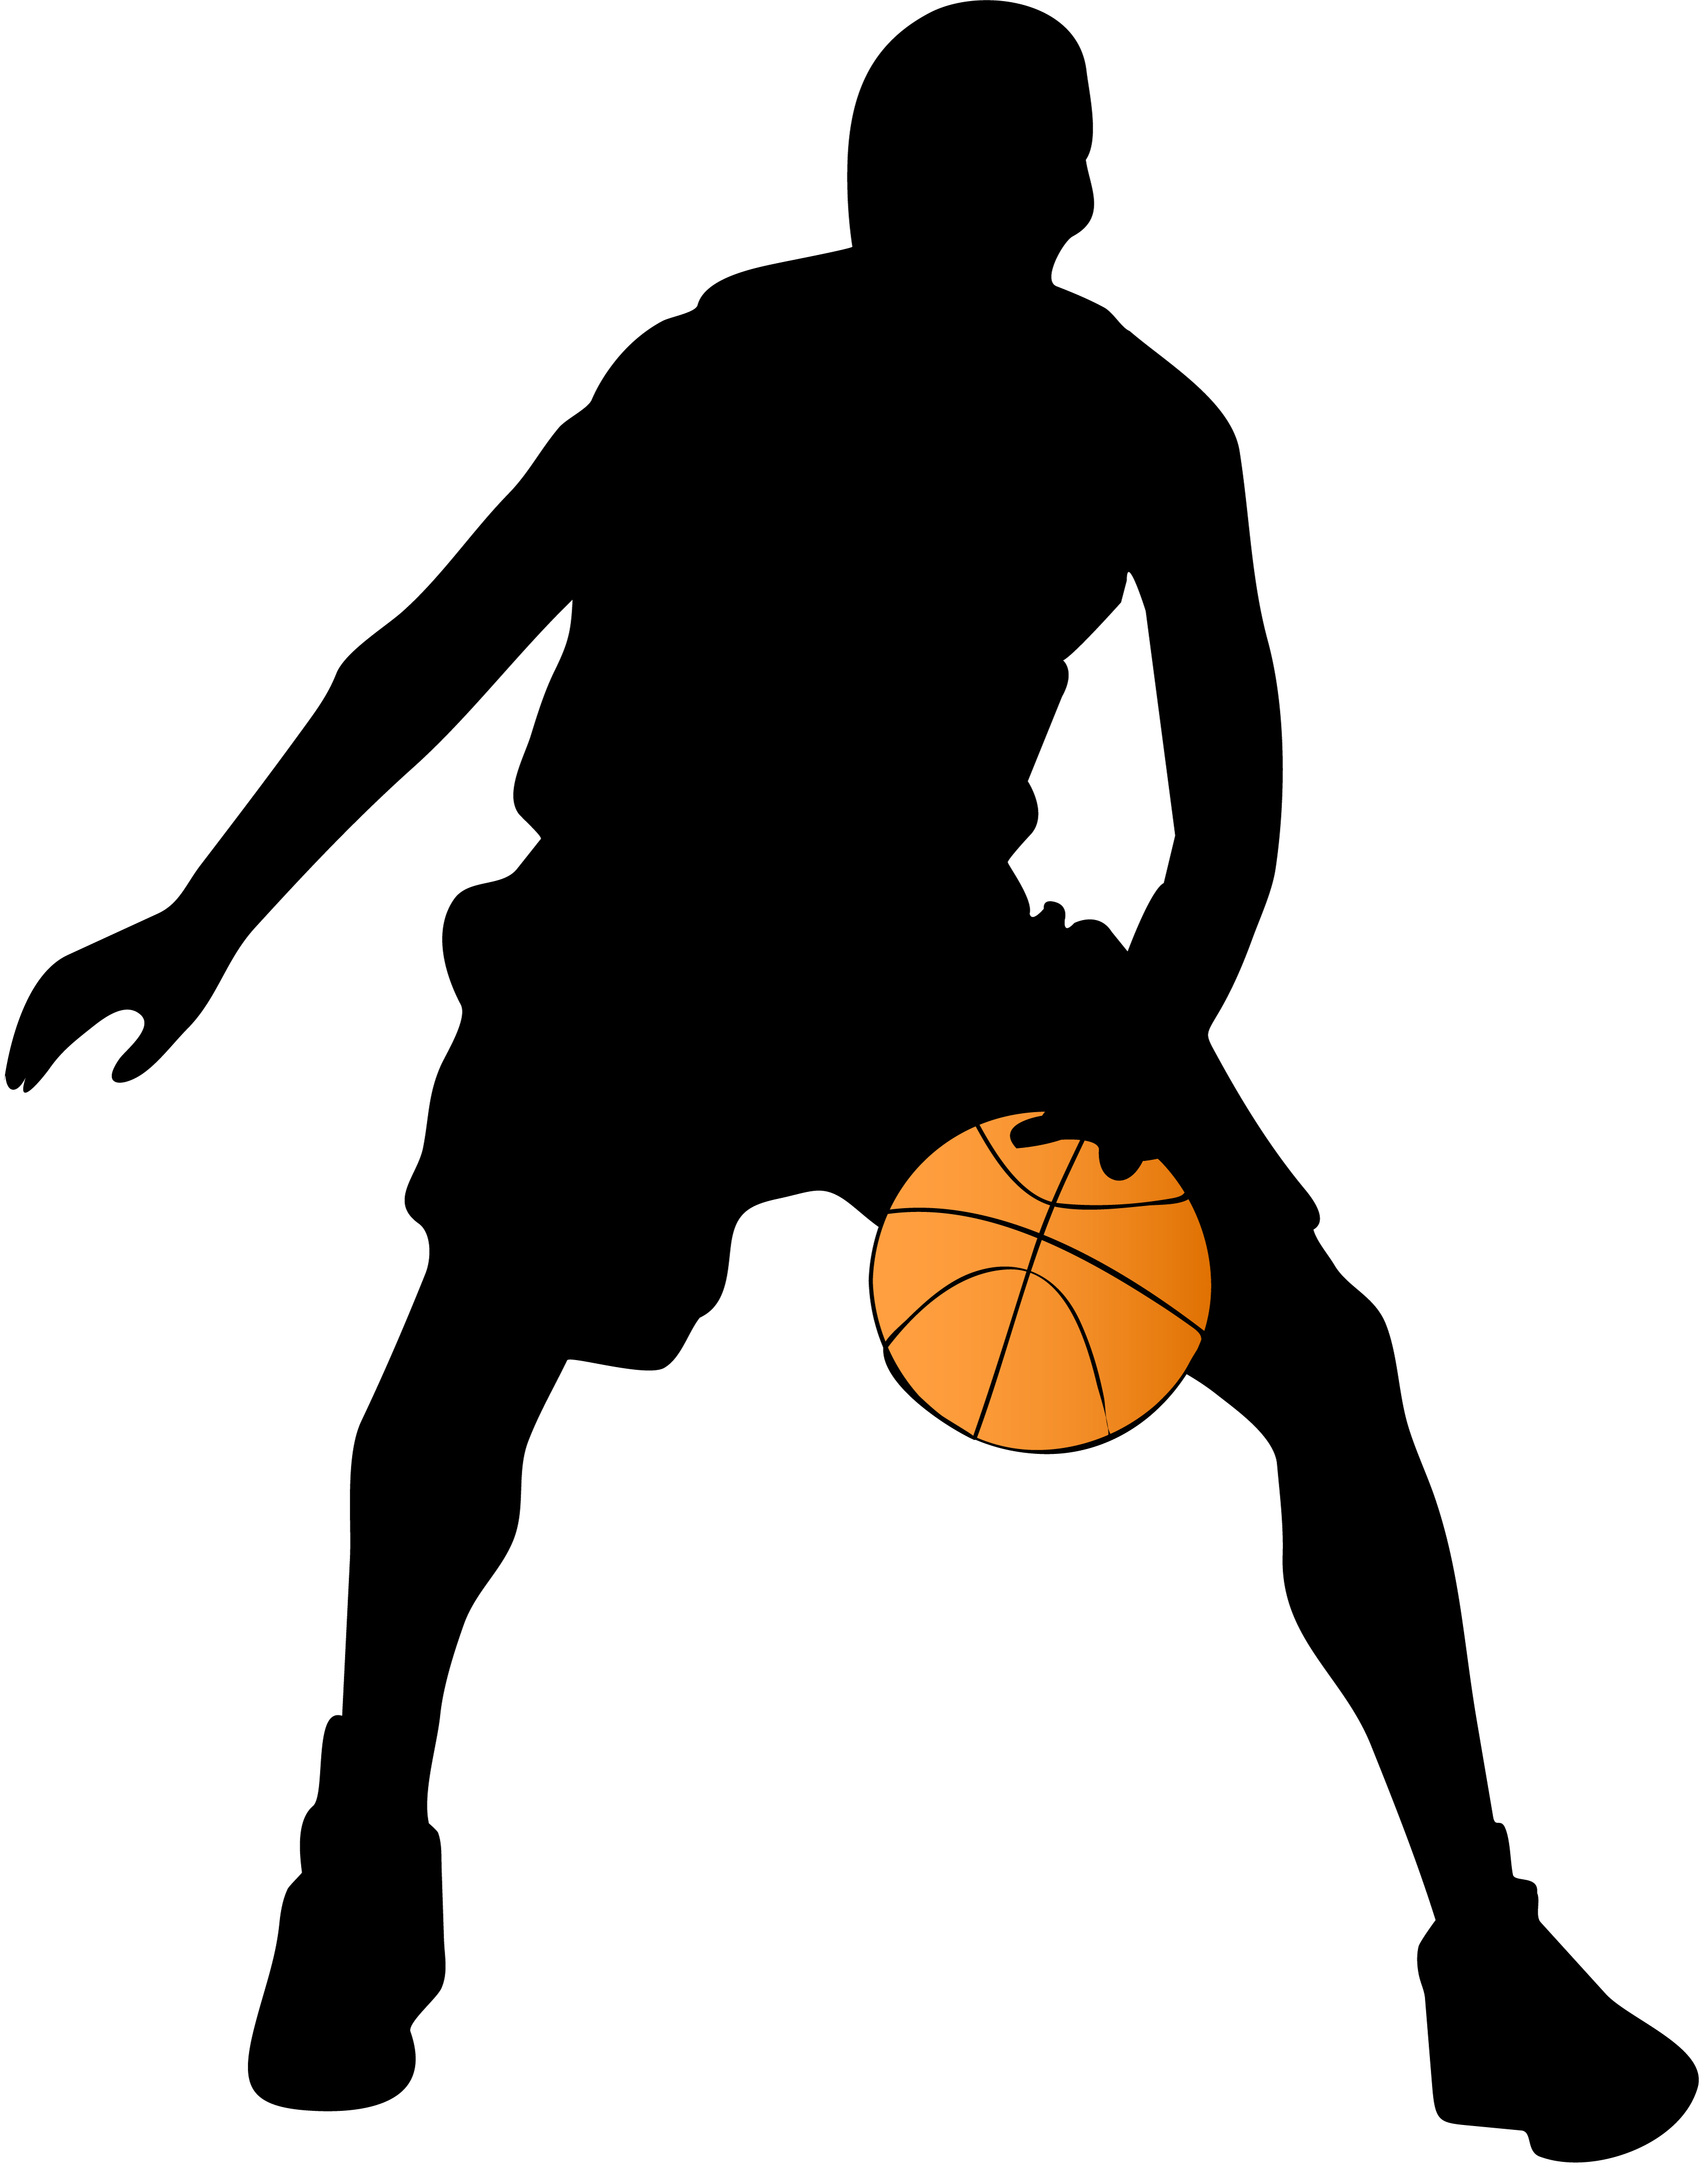 45 images of Basketball Silhouette Clip Art . You can use these free ...